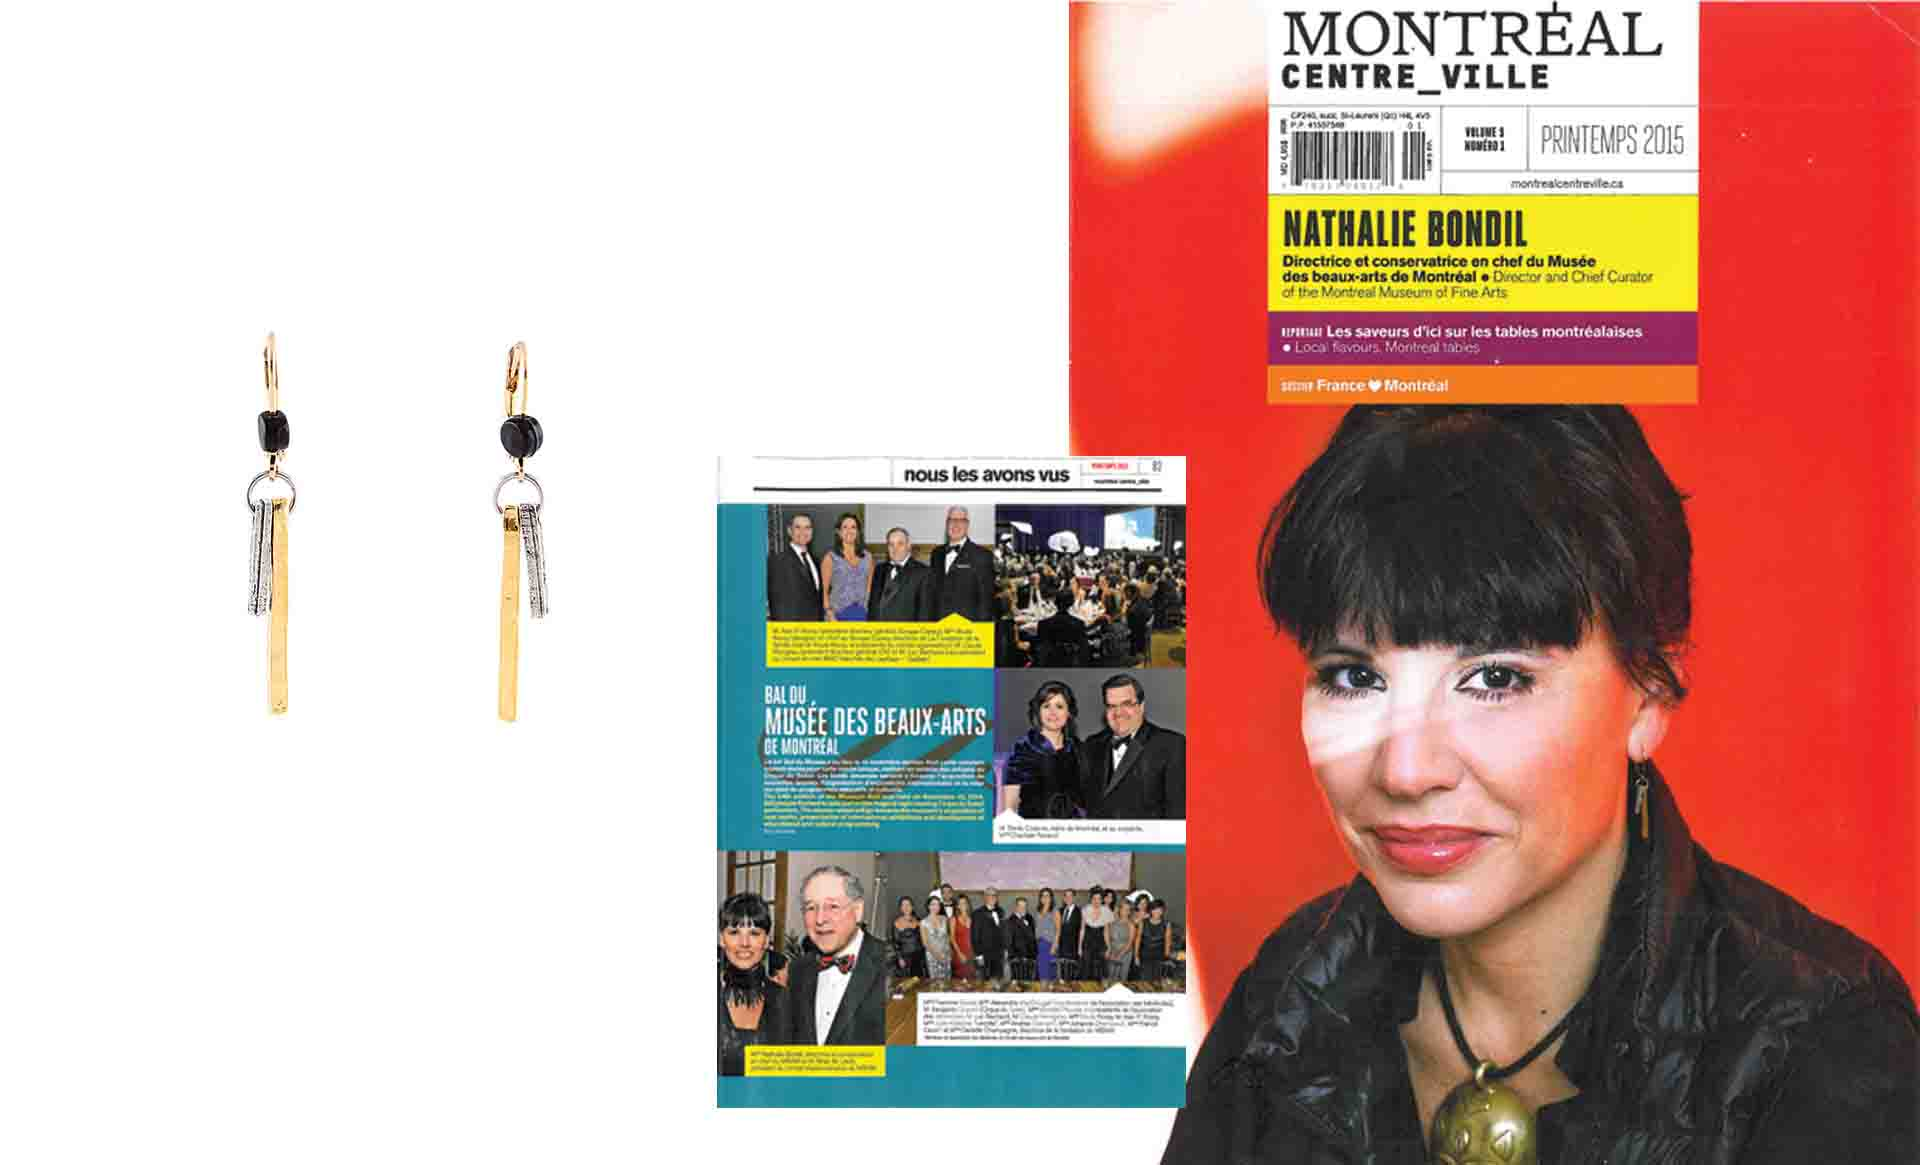 Nathalie Bondil chooses Anne-Marie Chagnon jewellery